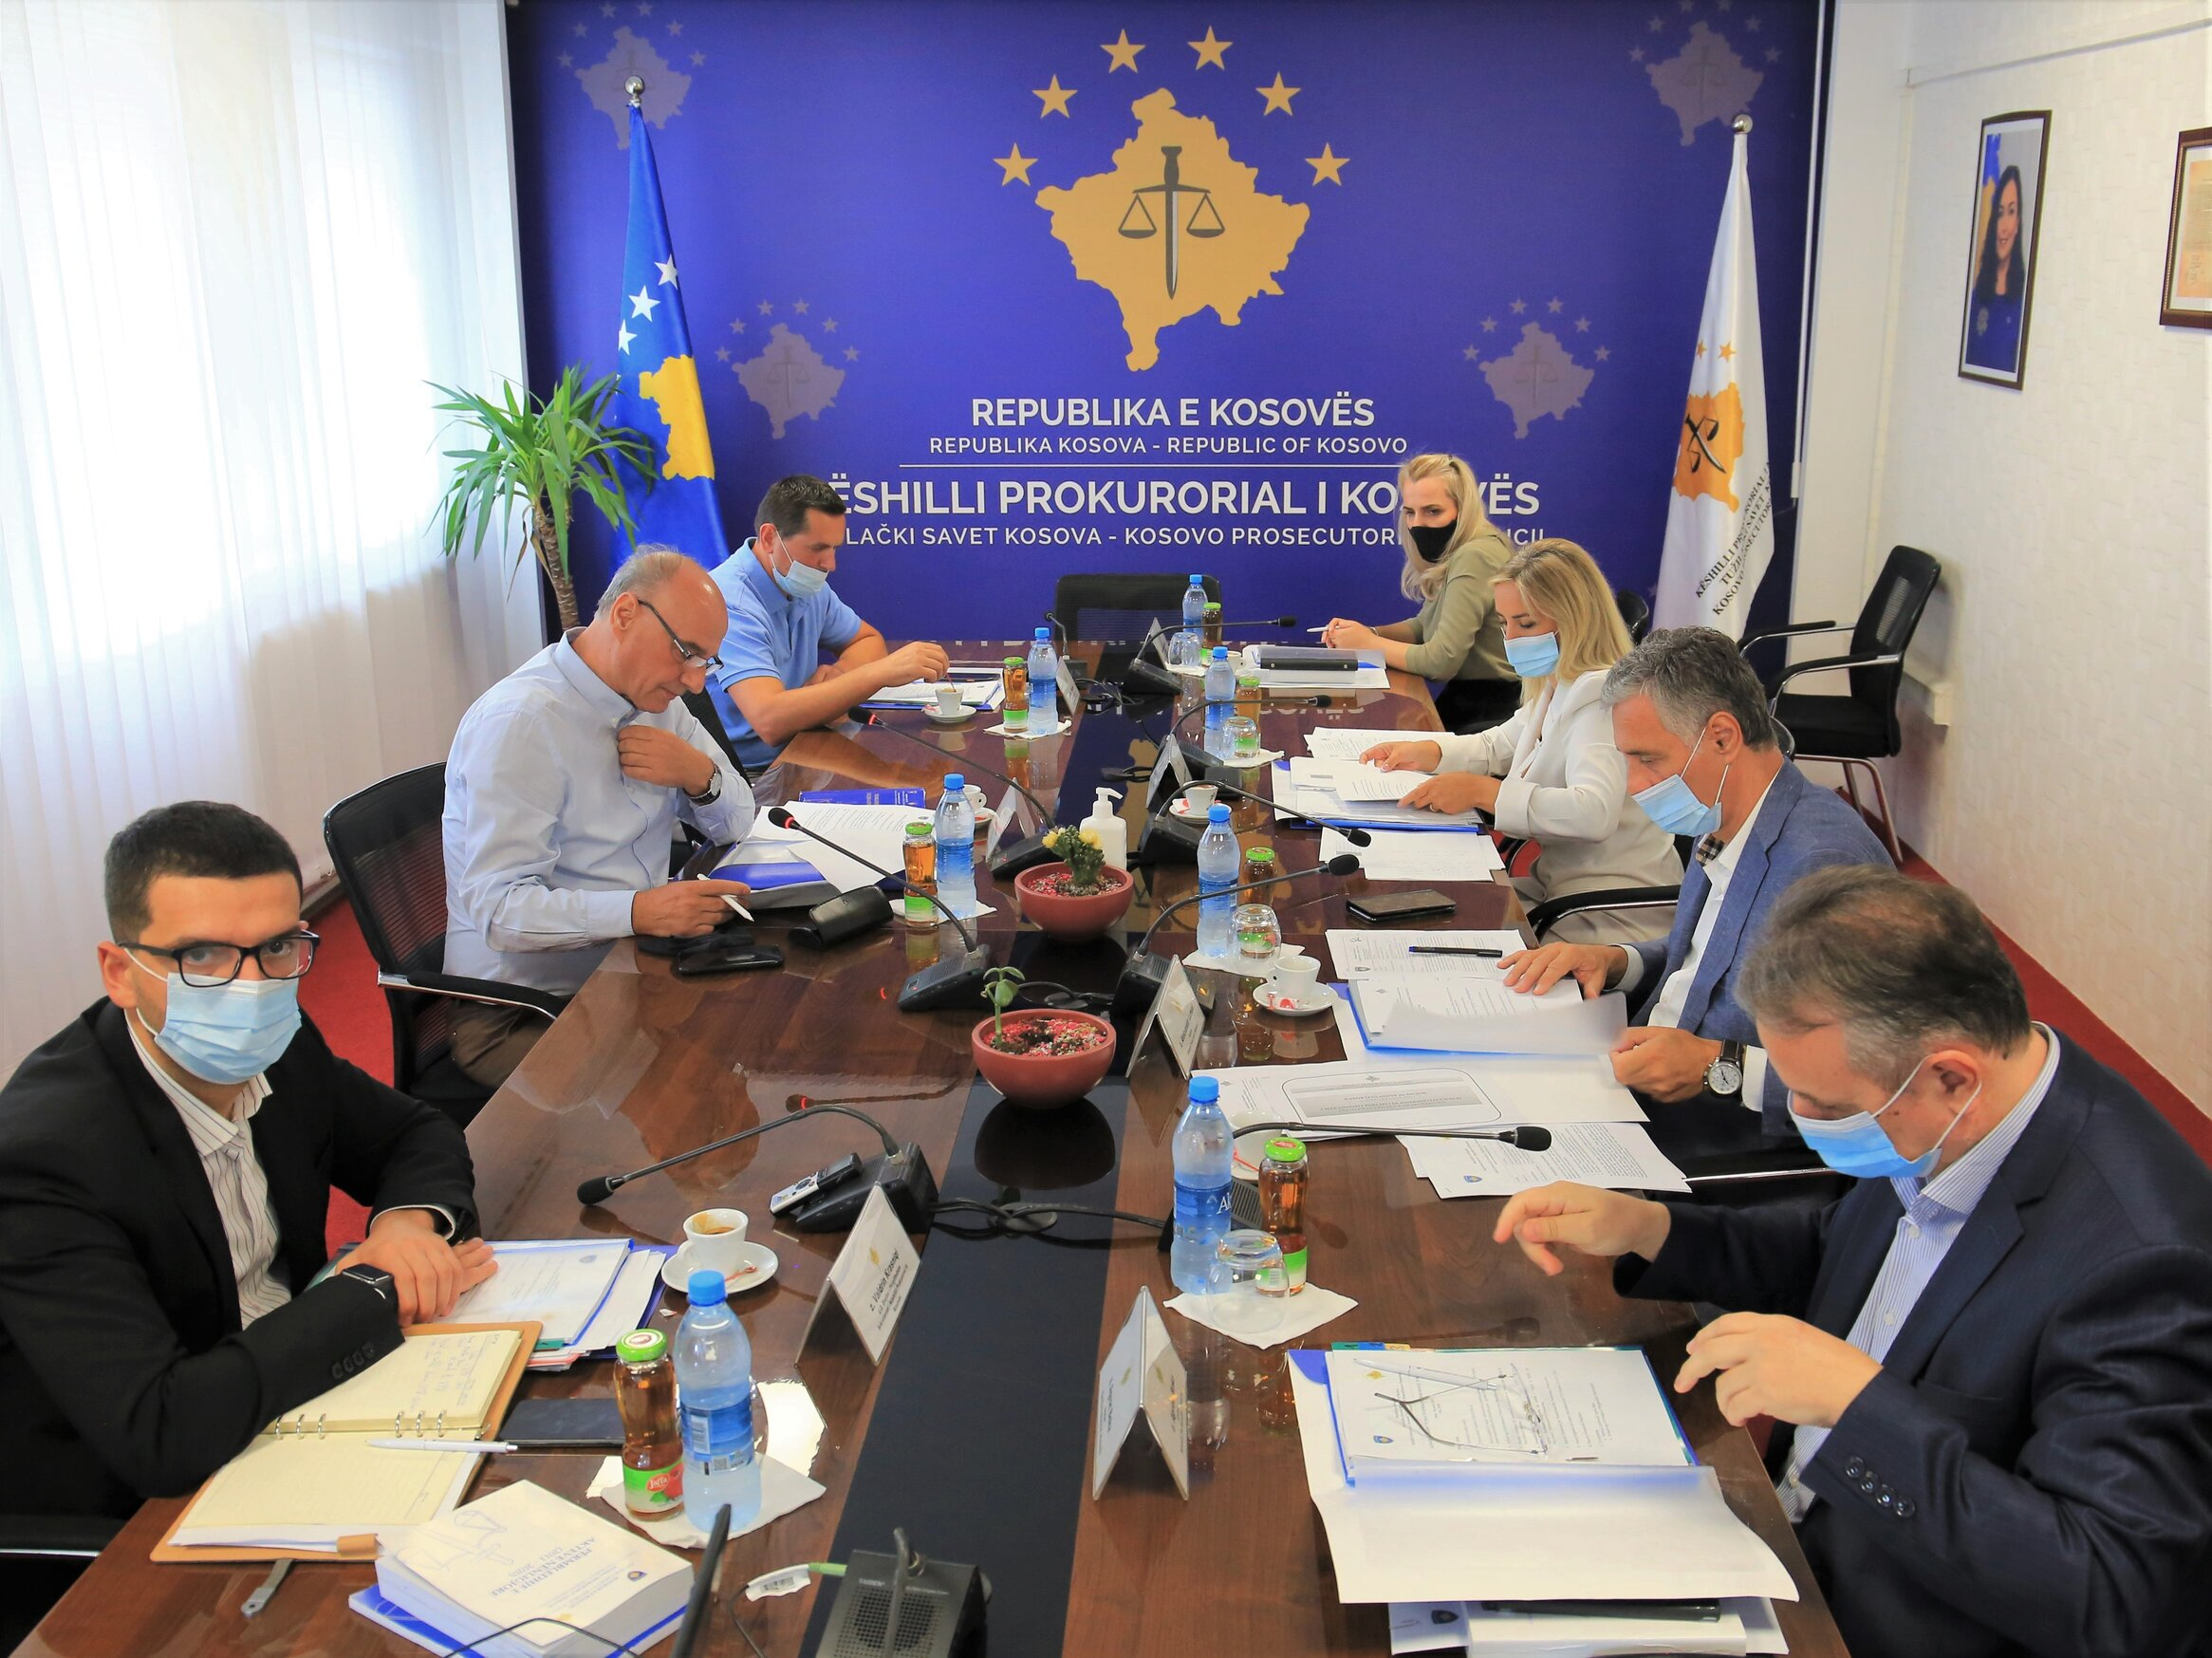 The former director of the Secretariat of the Kosovo Prosecutorial Council is dismissed